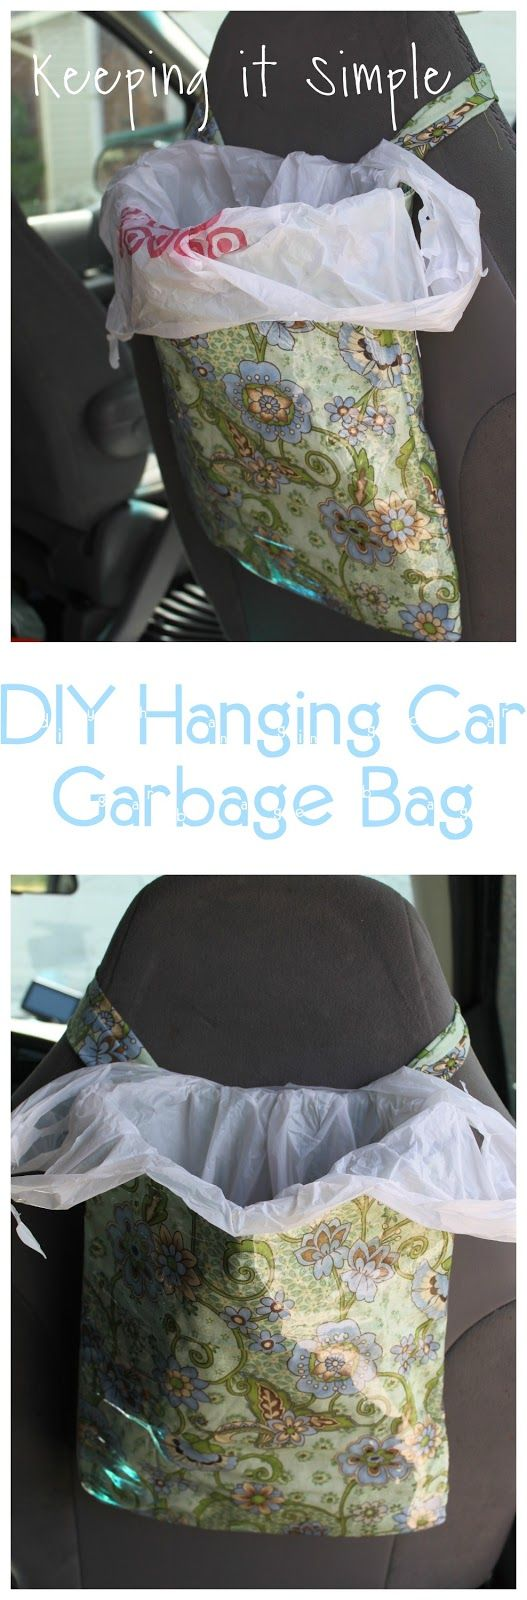 Car interior hanging - Diy Hanging Car Garbage Bag Perfect For Kids Who Are In The Back Seat That